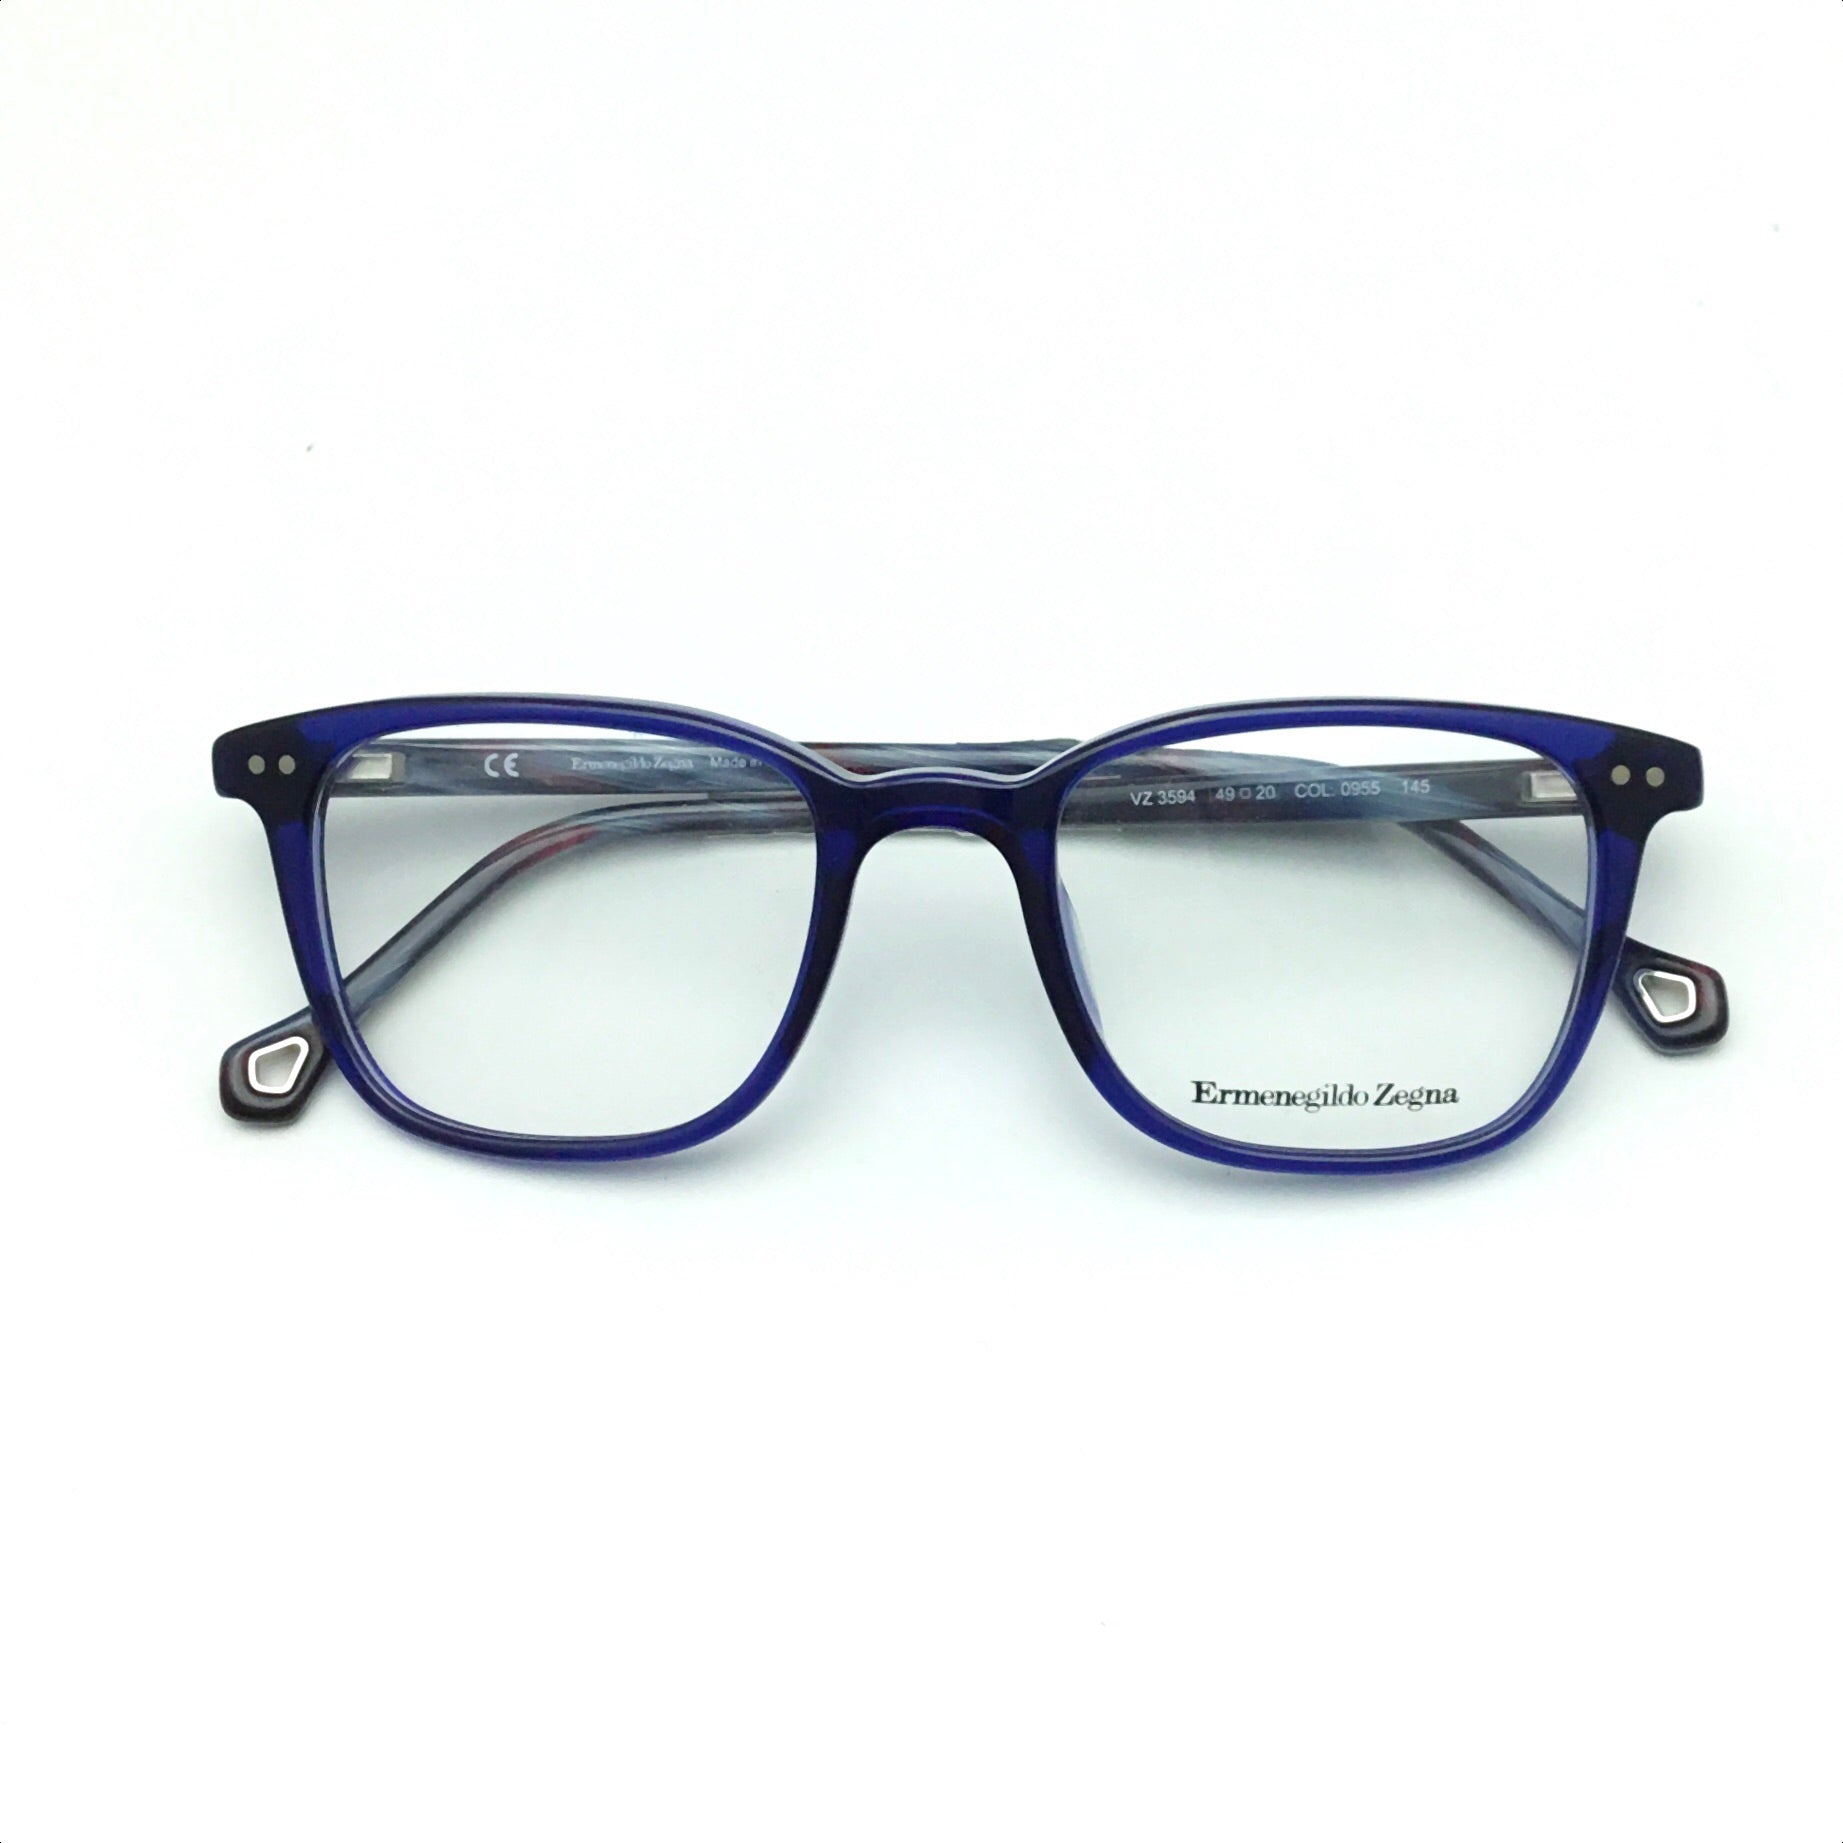 Zegna Glasses $239 ITALY M9